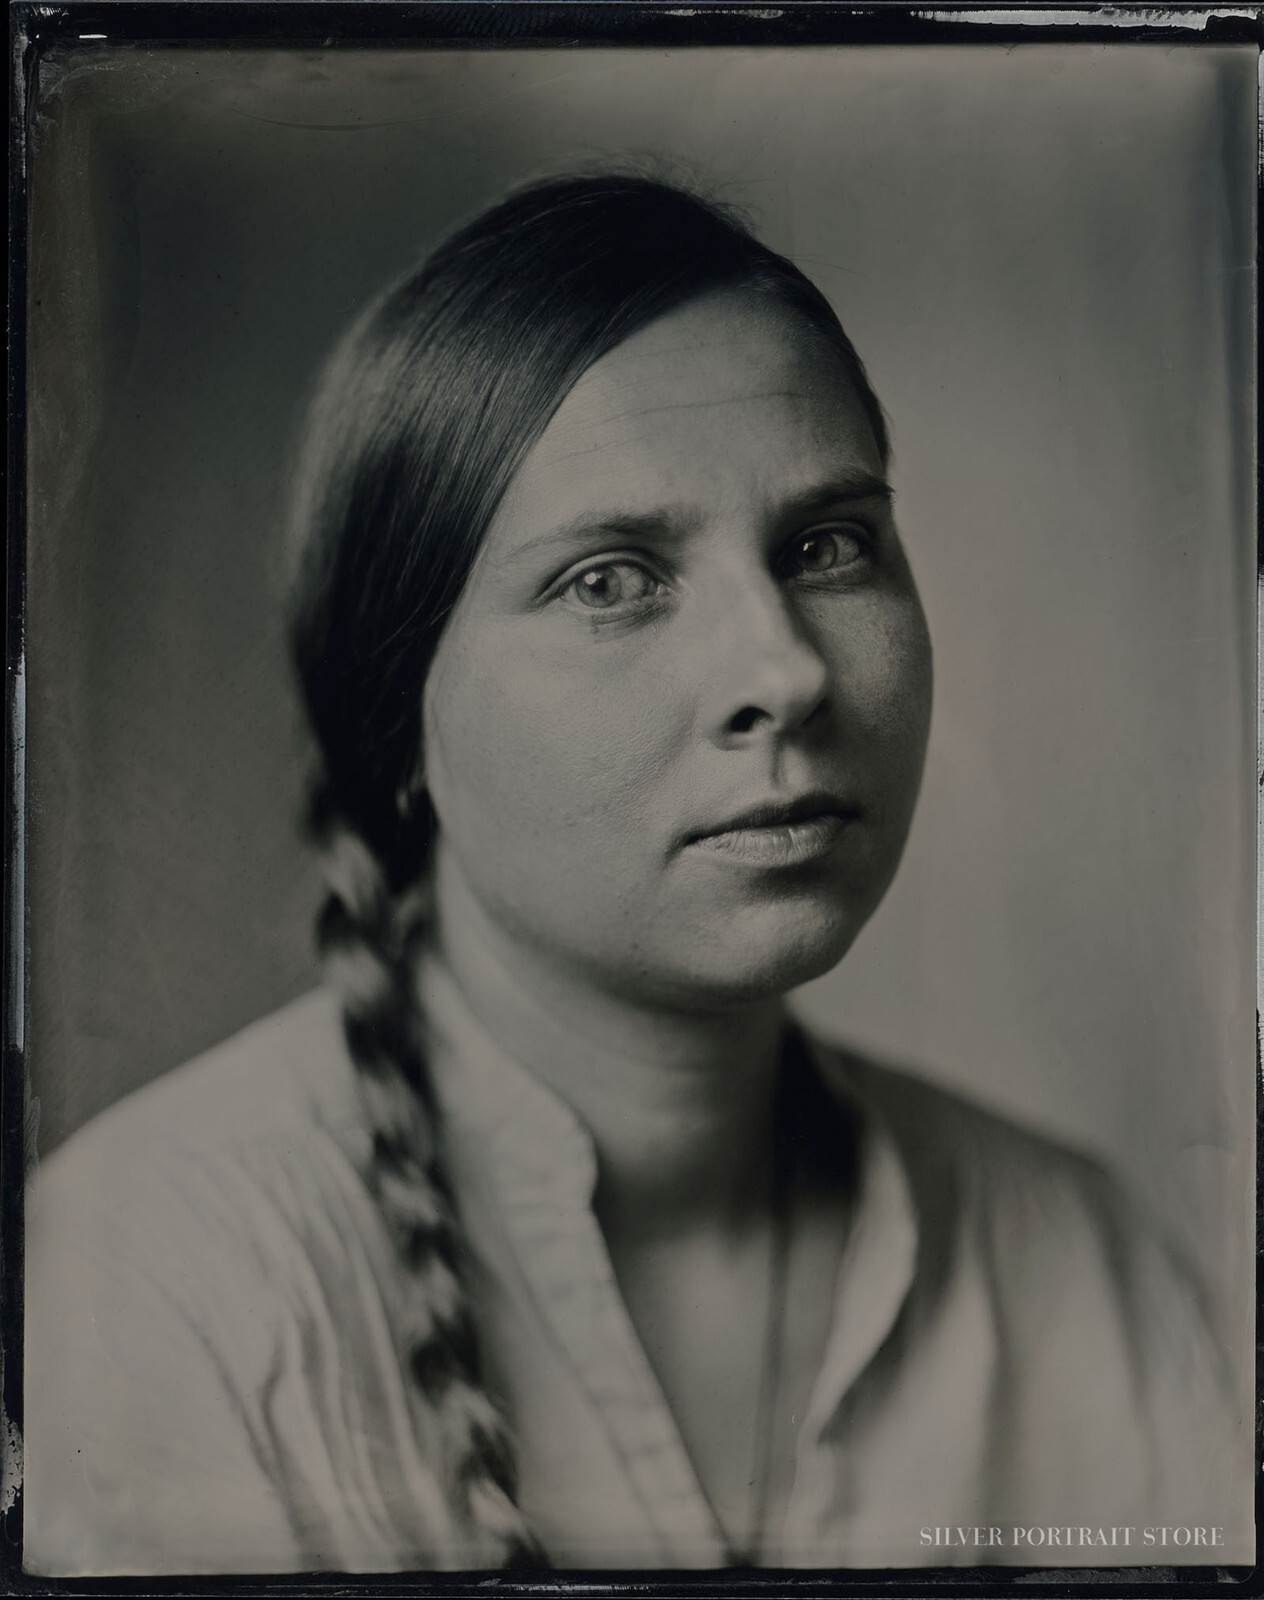 Anna-Silver Portrait Store-Wet plate collodion-Tintype 10 x 12 cm.